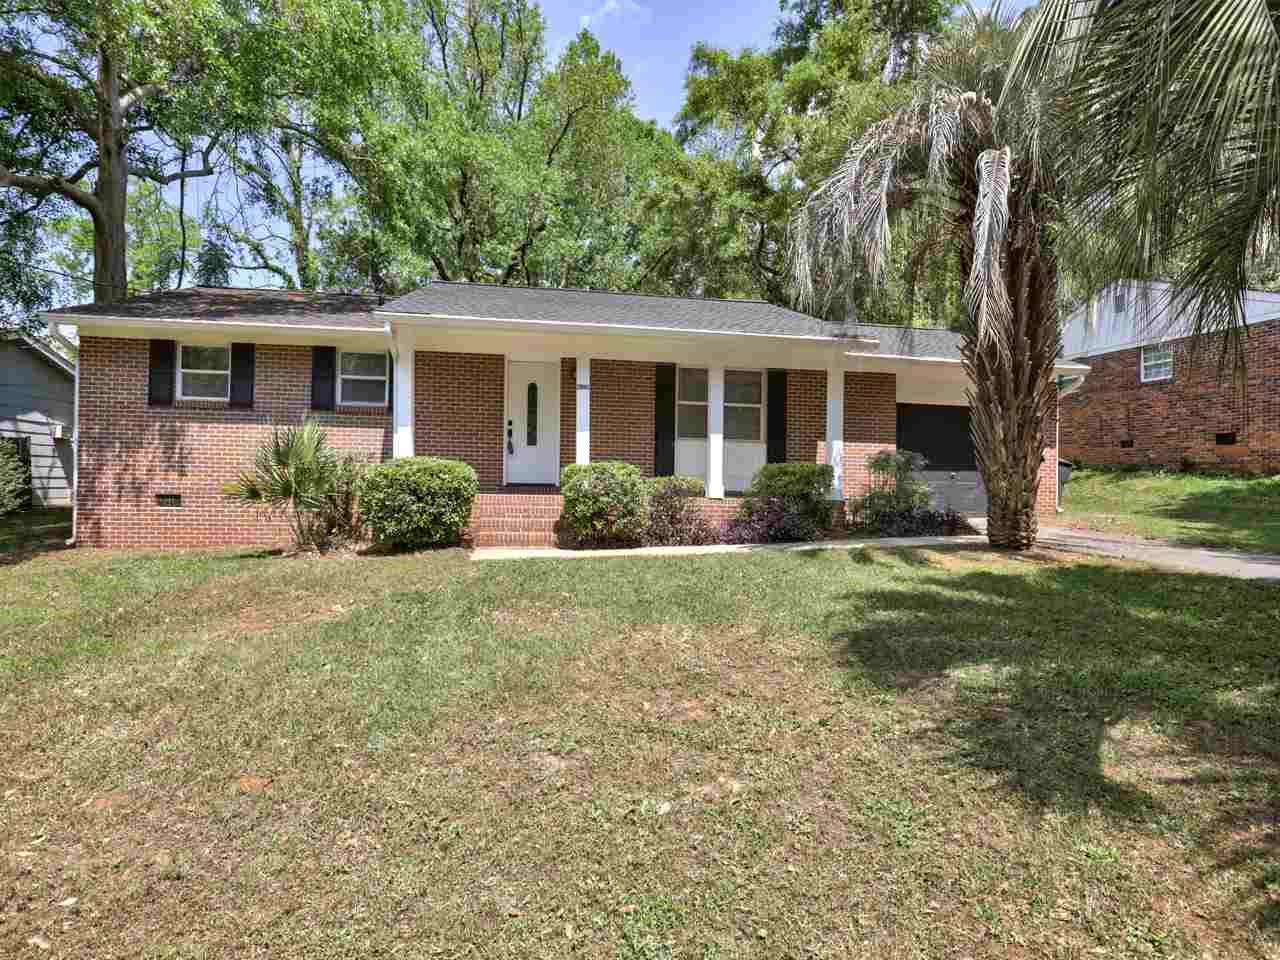 Photo of 2006 Sheridan Road, TALLAHASSEE, FL 32303 (MLS # 314802)